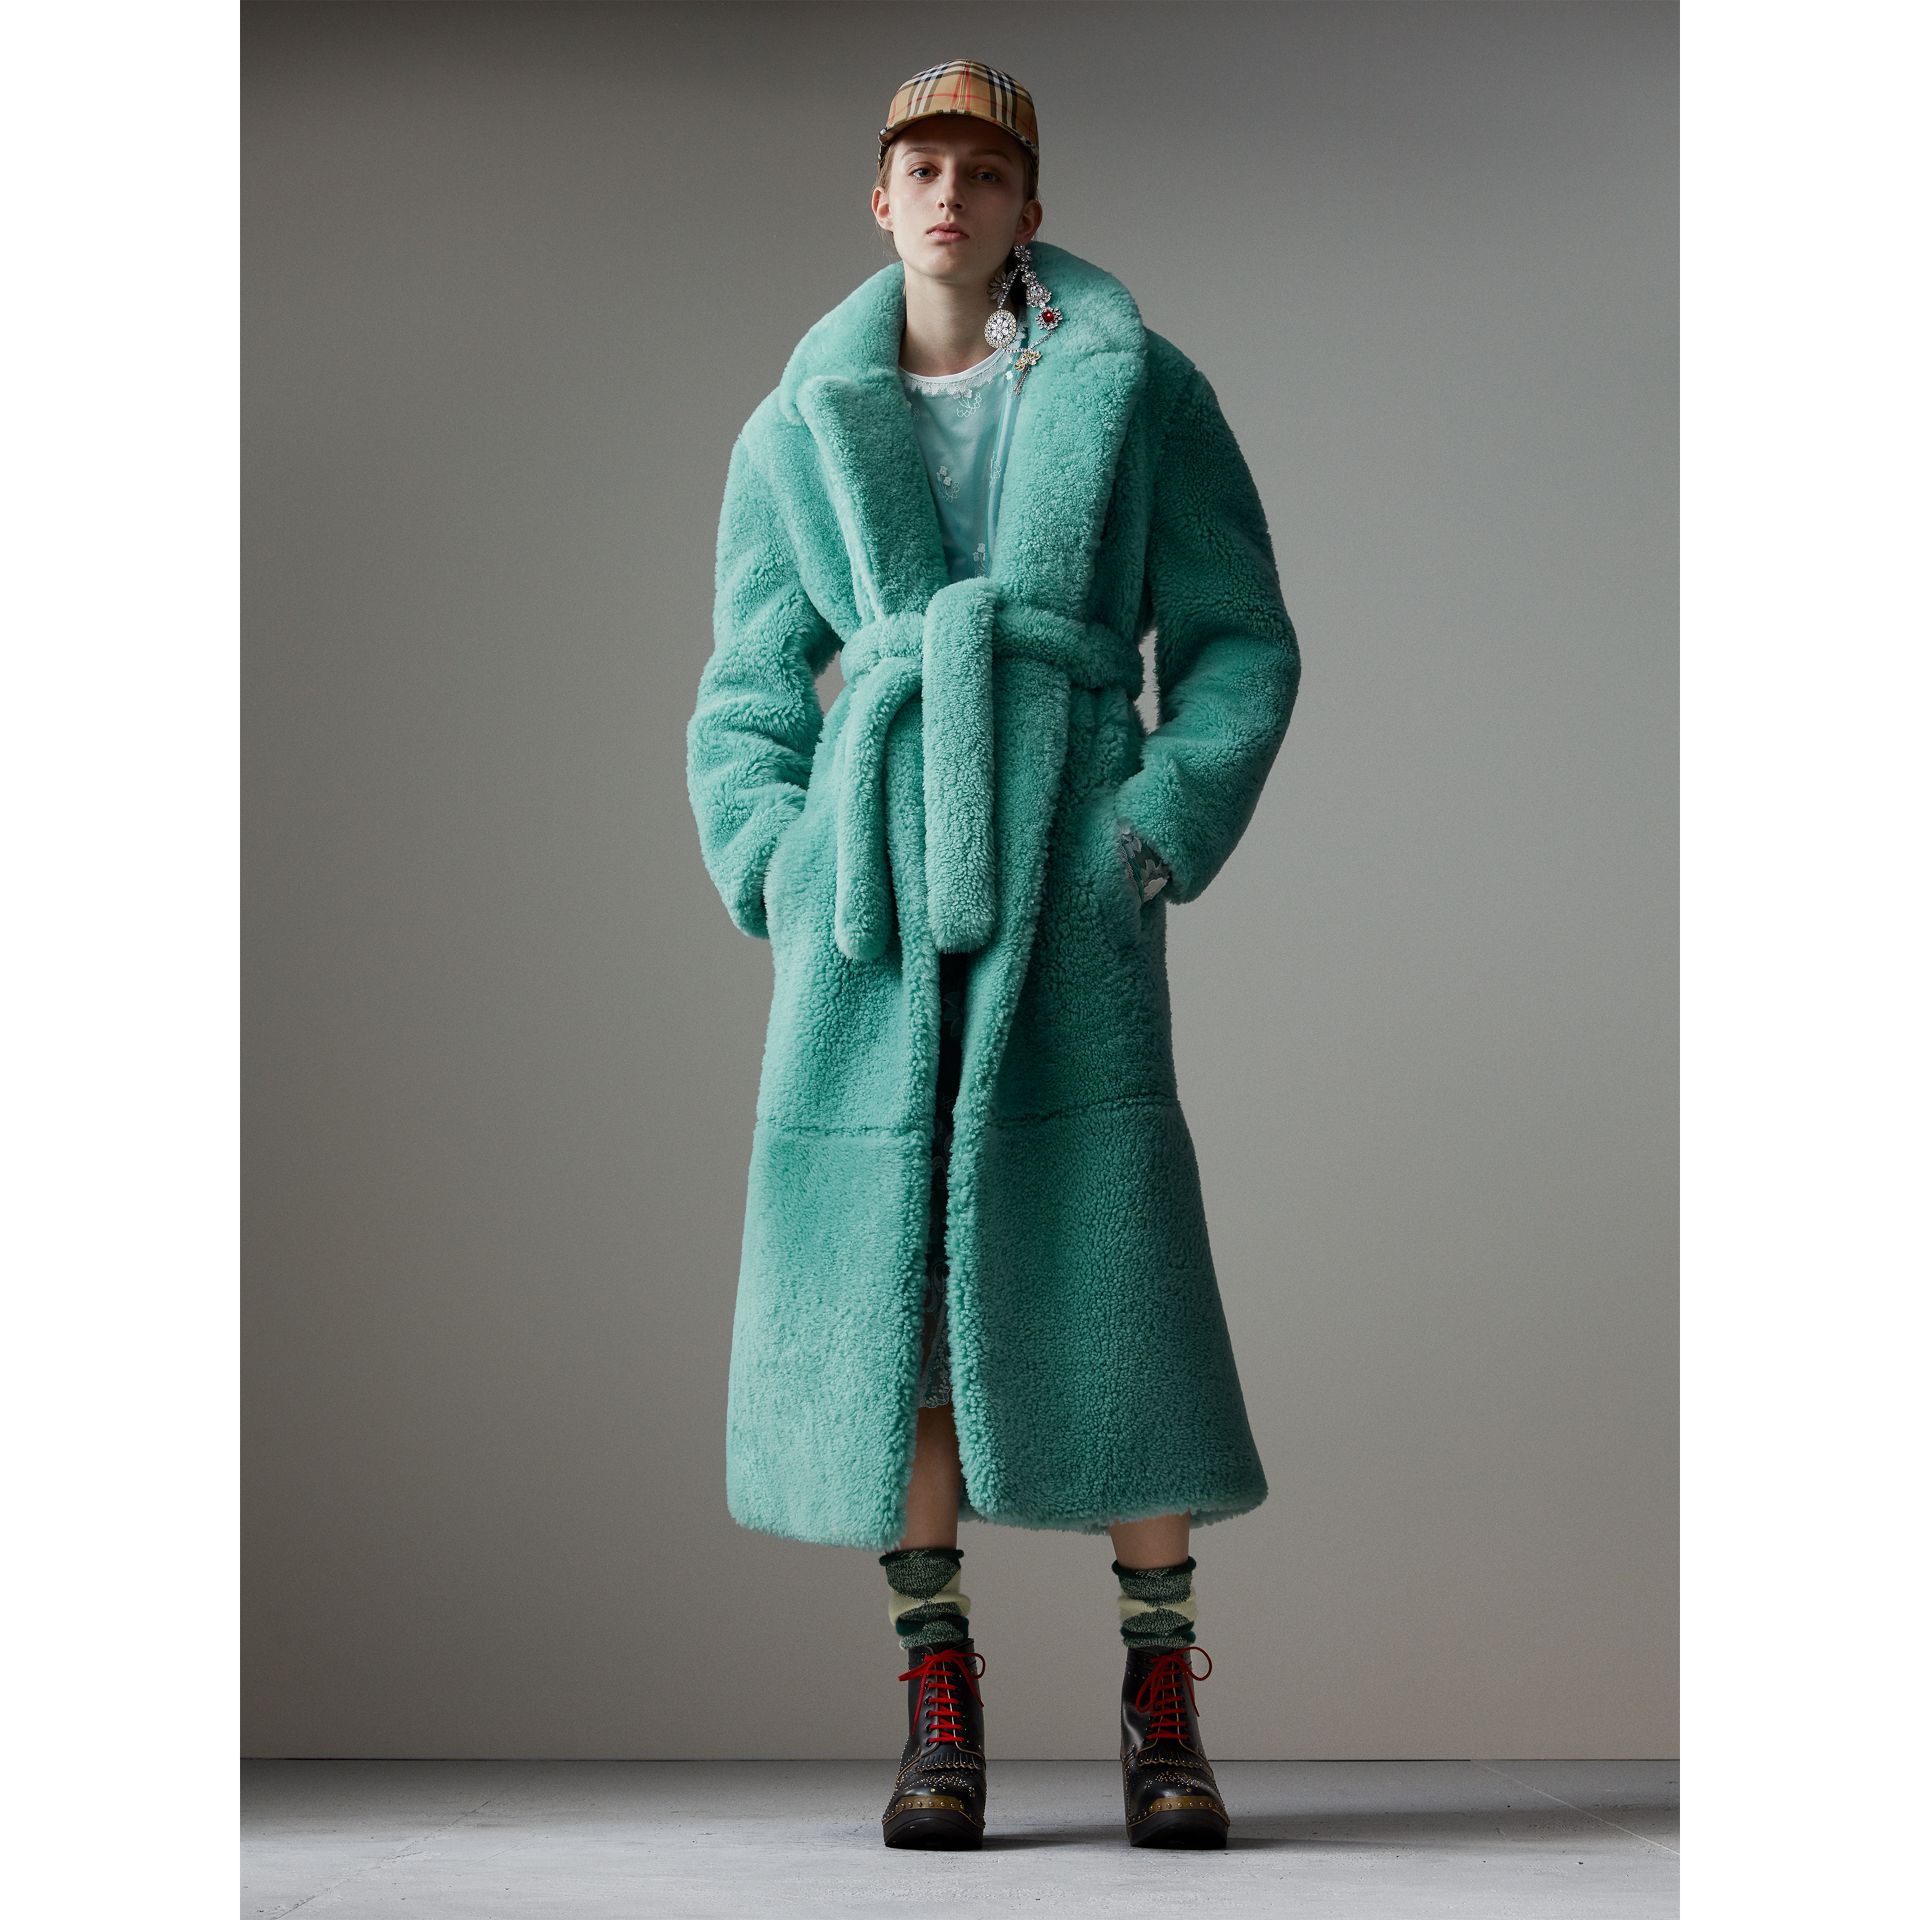 Shearling Oversized Coat in Turquoise - Women | Burberry United Kingdom - gallery image 1